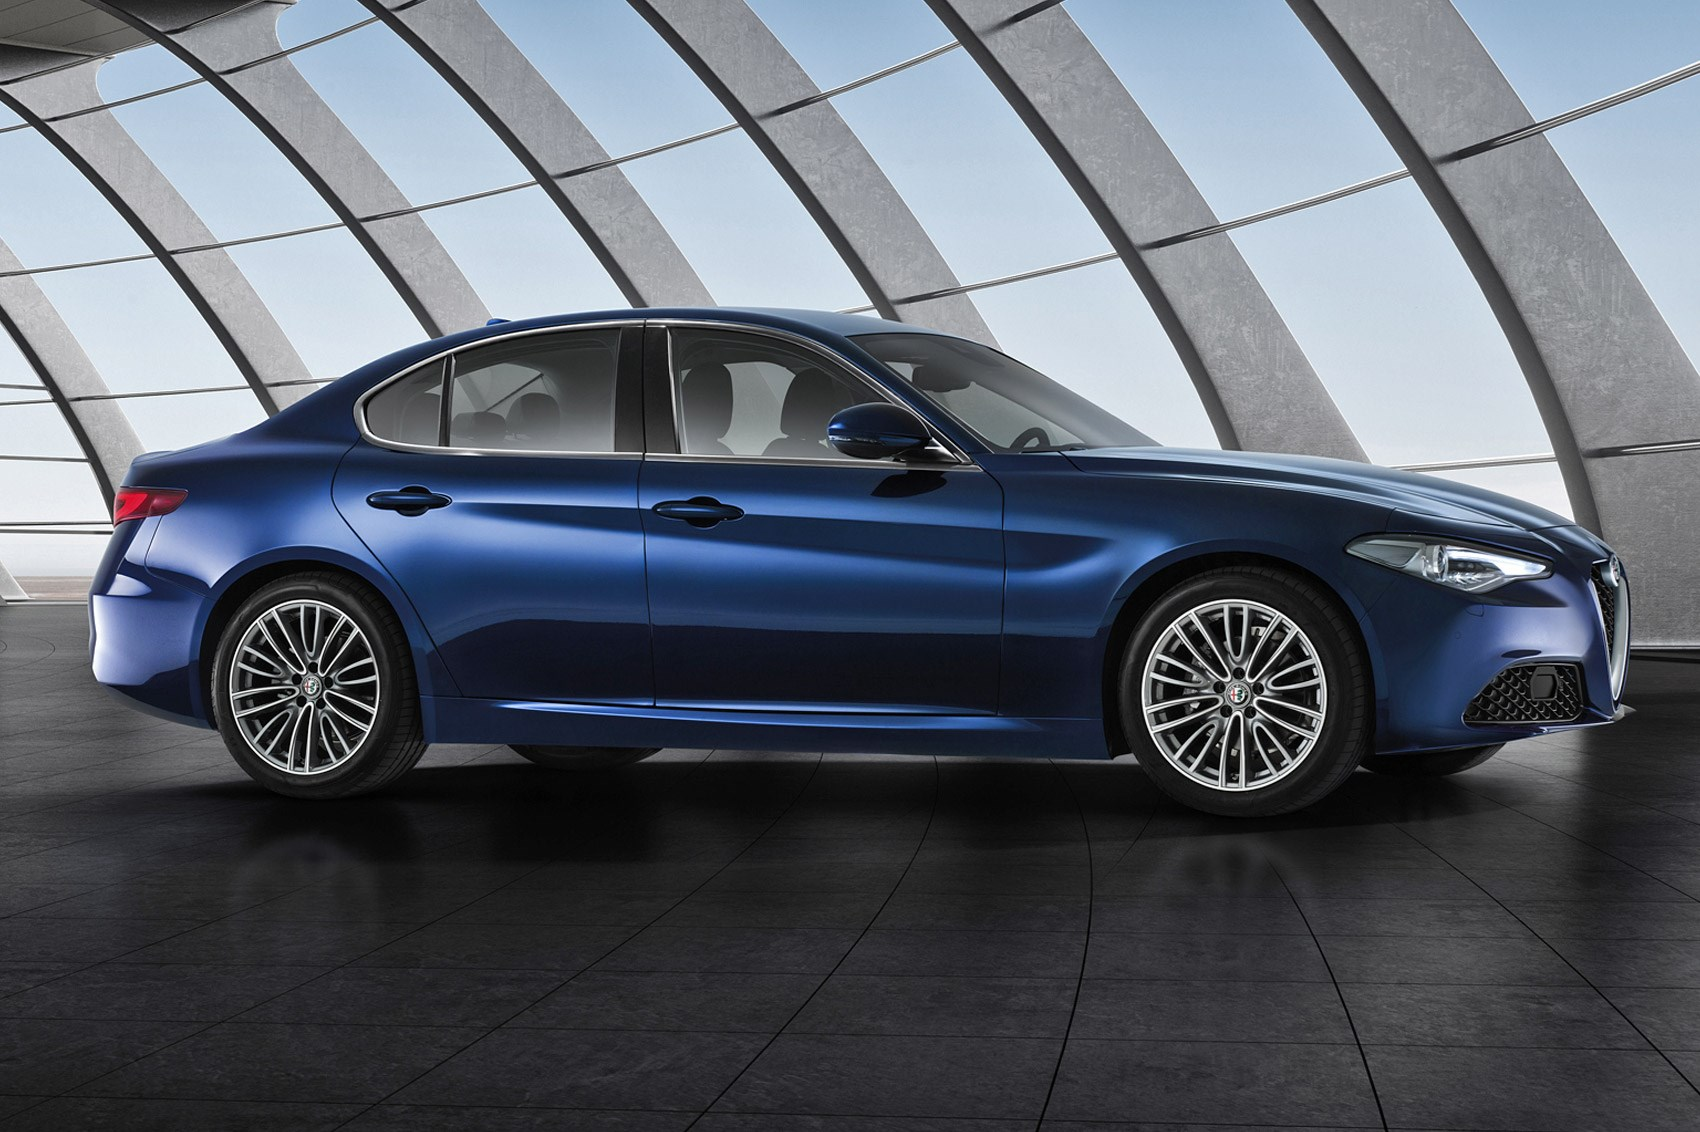 Alfa Romeo Giulia Pricing Announced UK Range To Start At K CAR - Alfa romeo price range